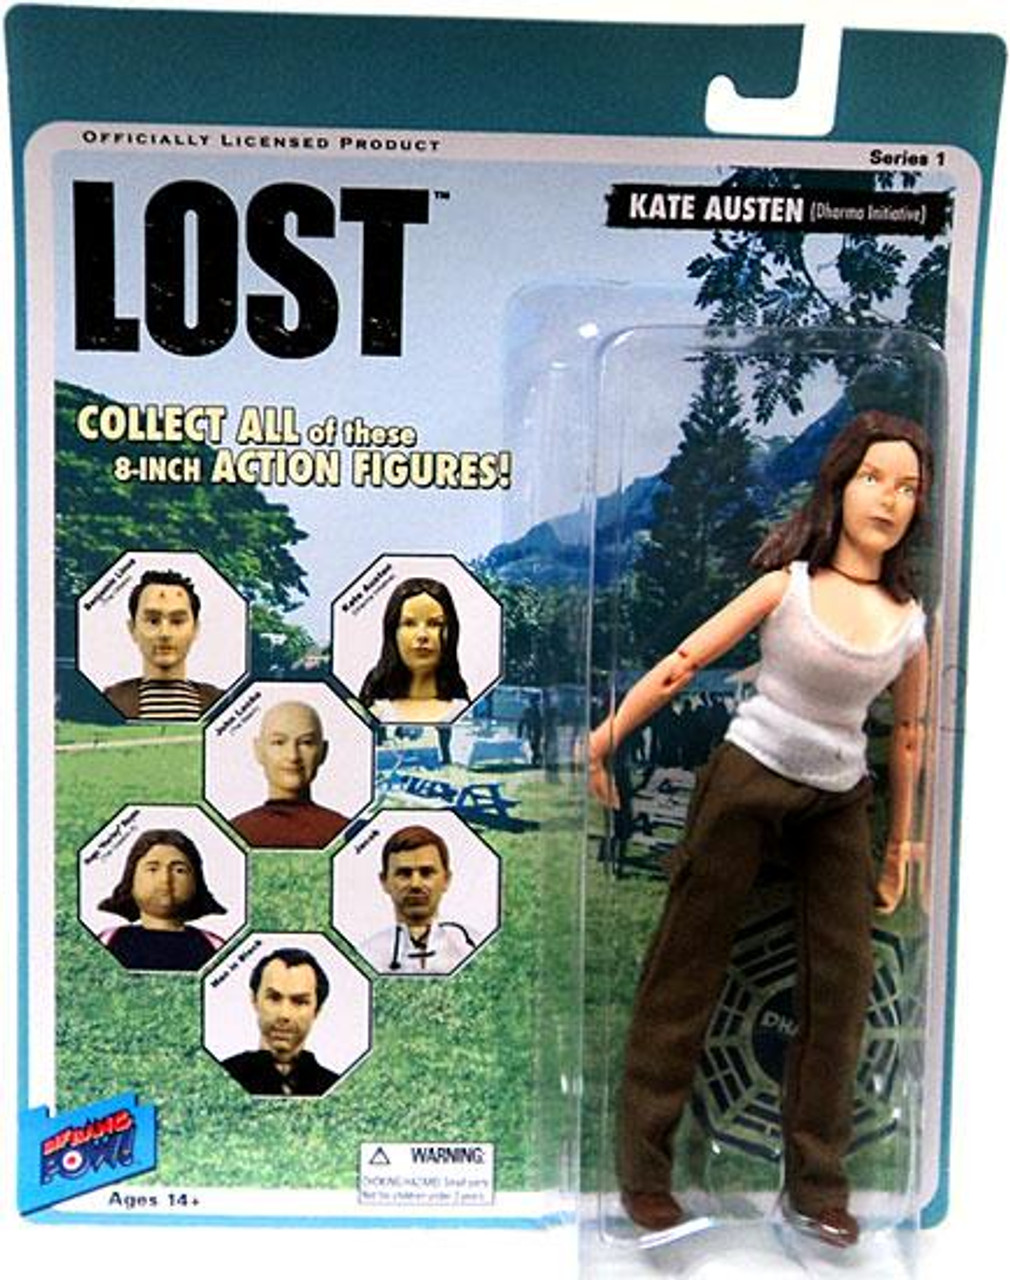 Lost Series 1 Kate Austen Action Figure